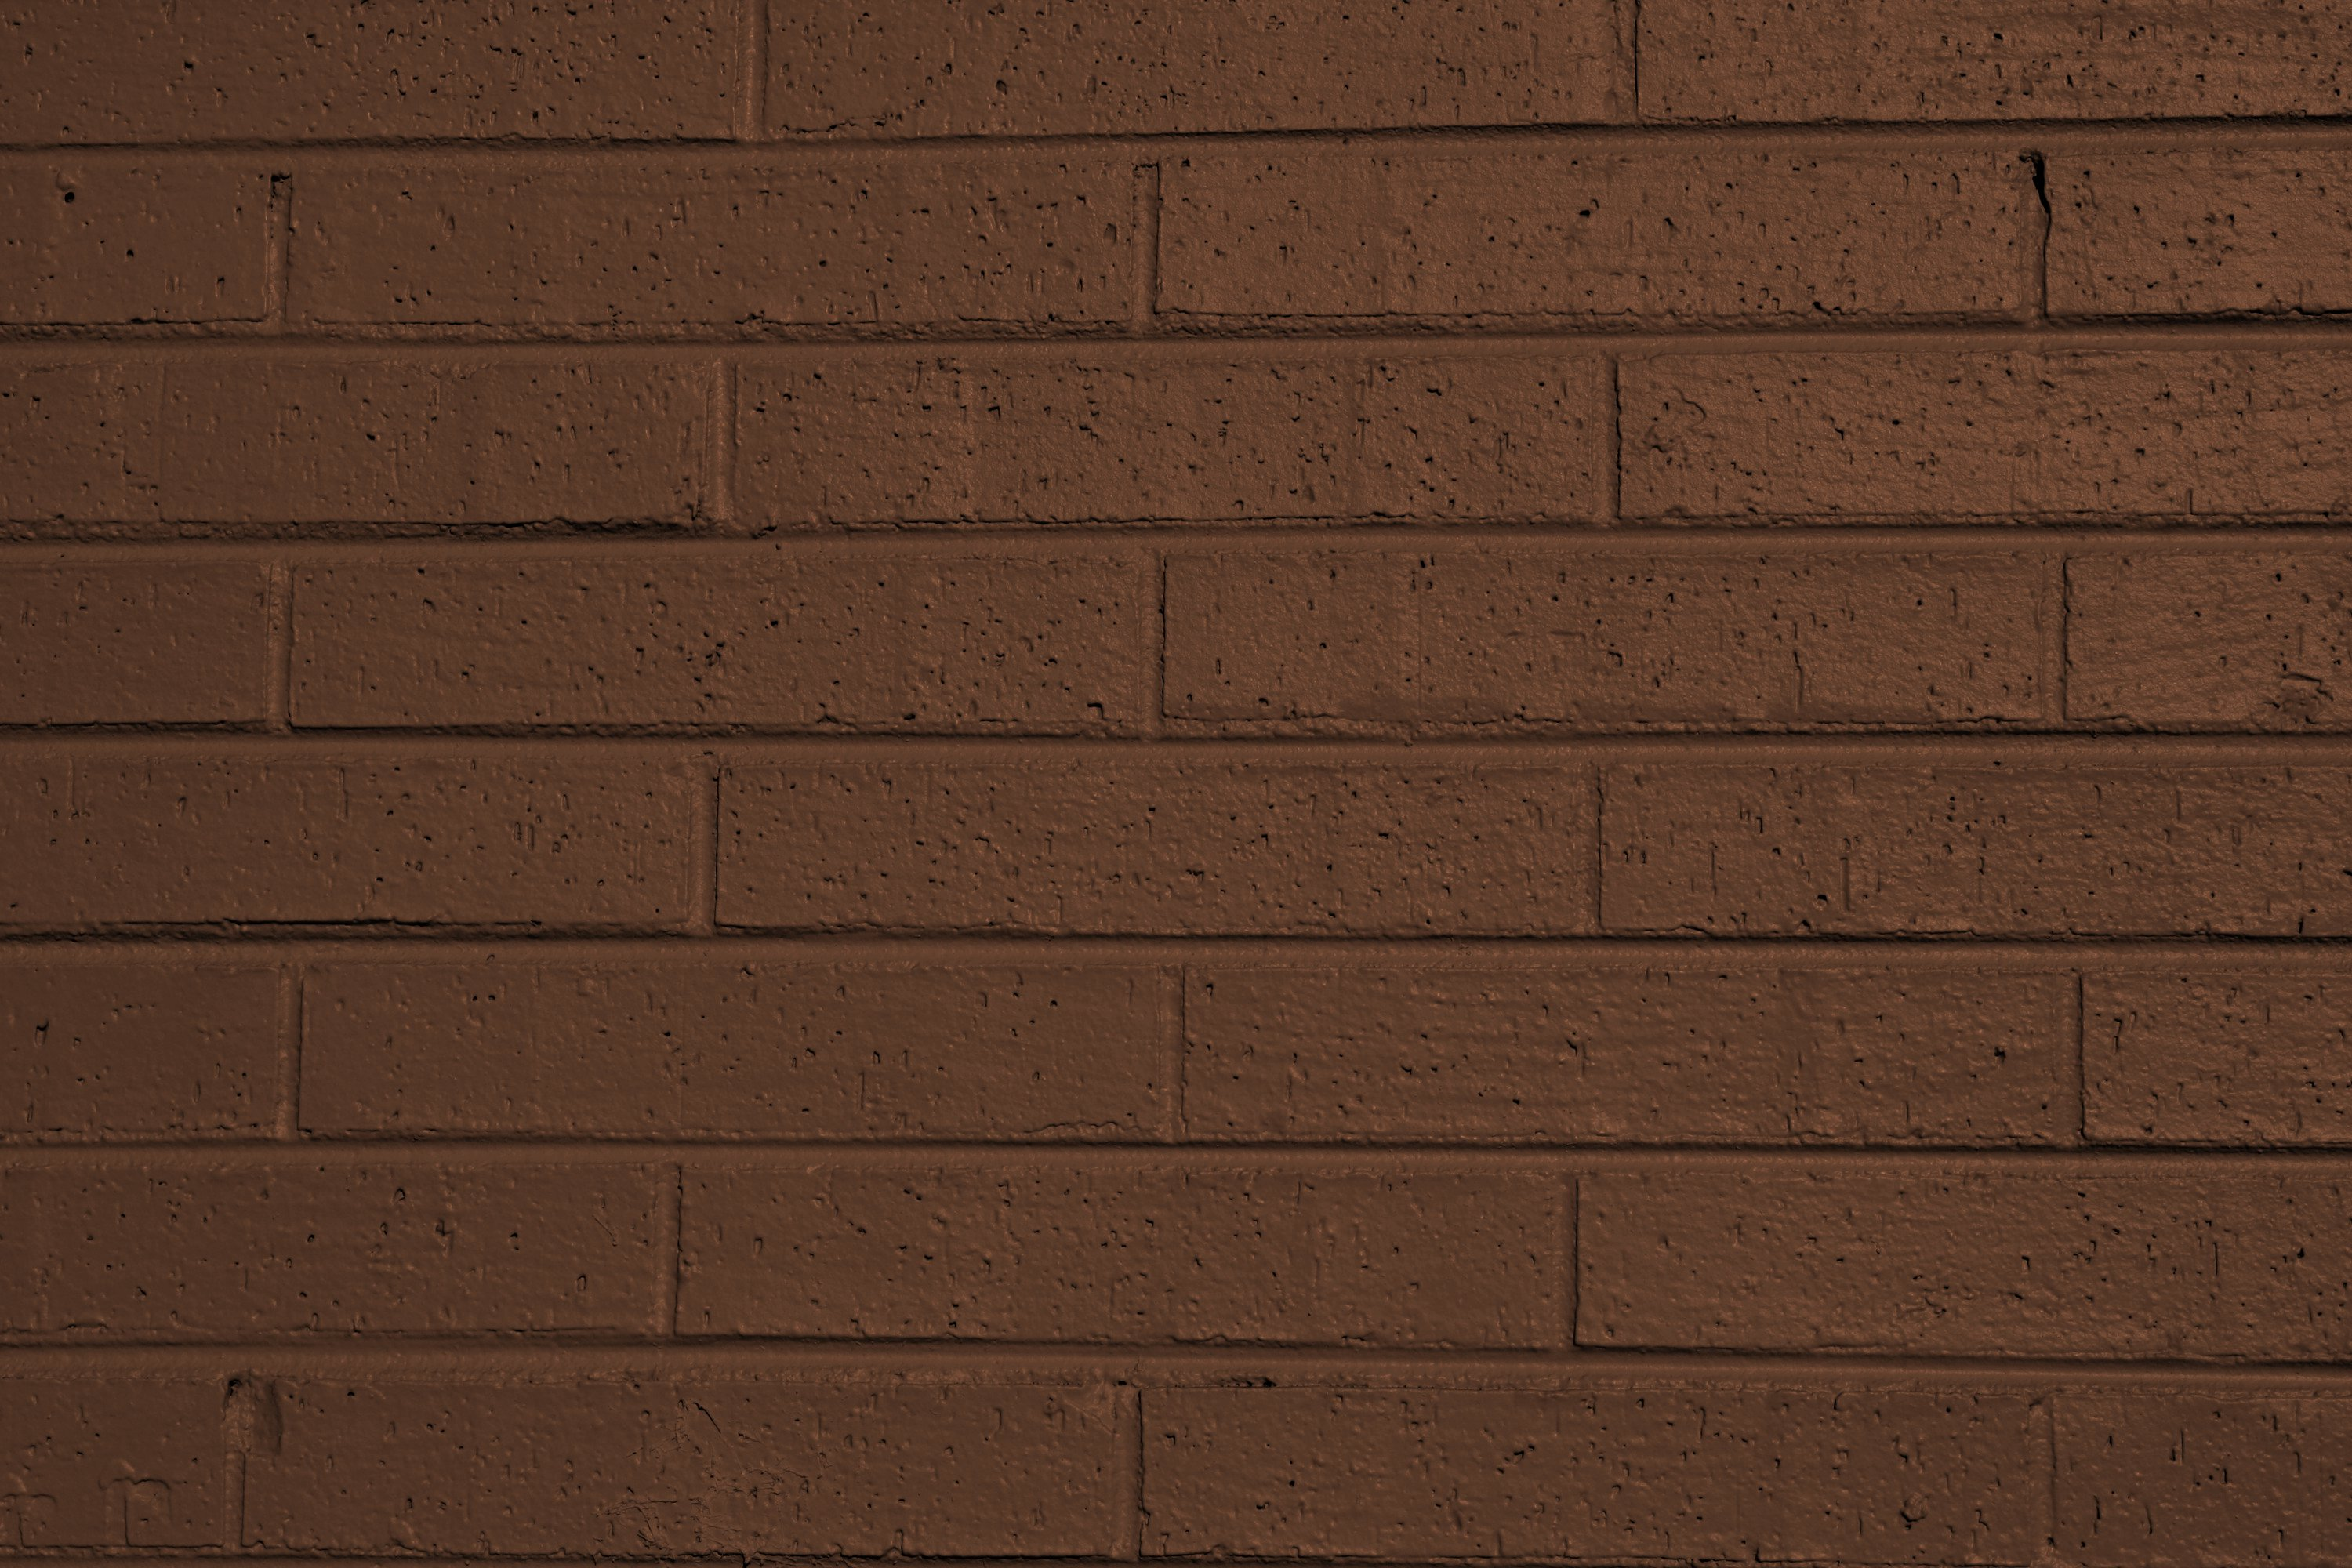 Brown painted brick wall texture picture free photograph Chocolate colour wall paint